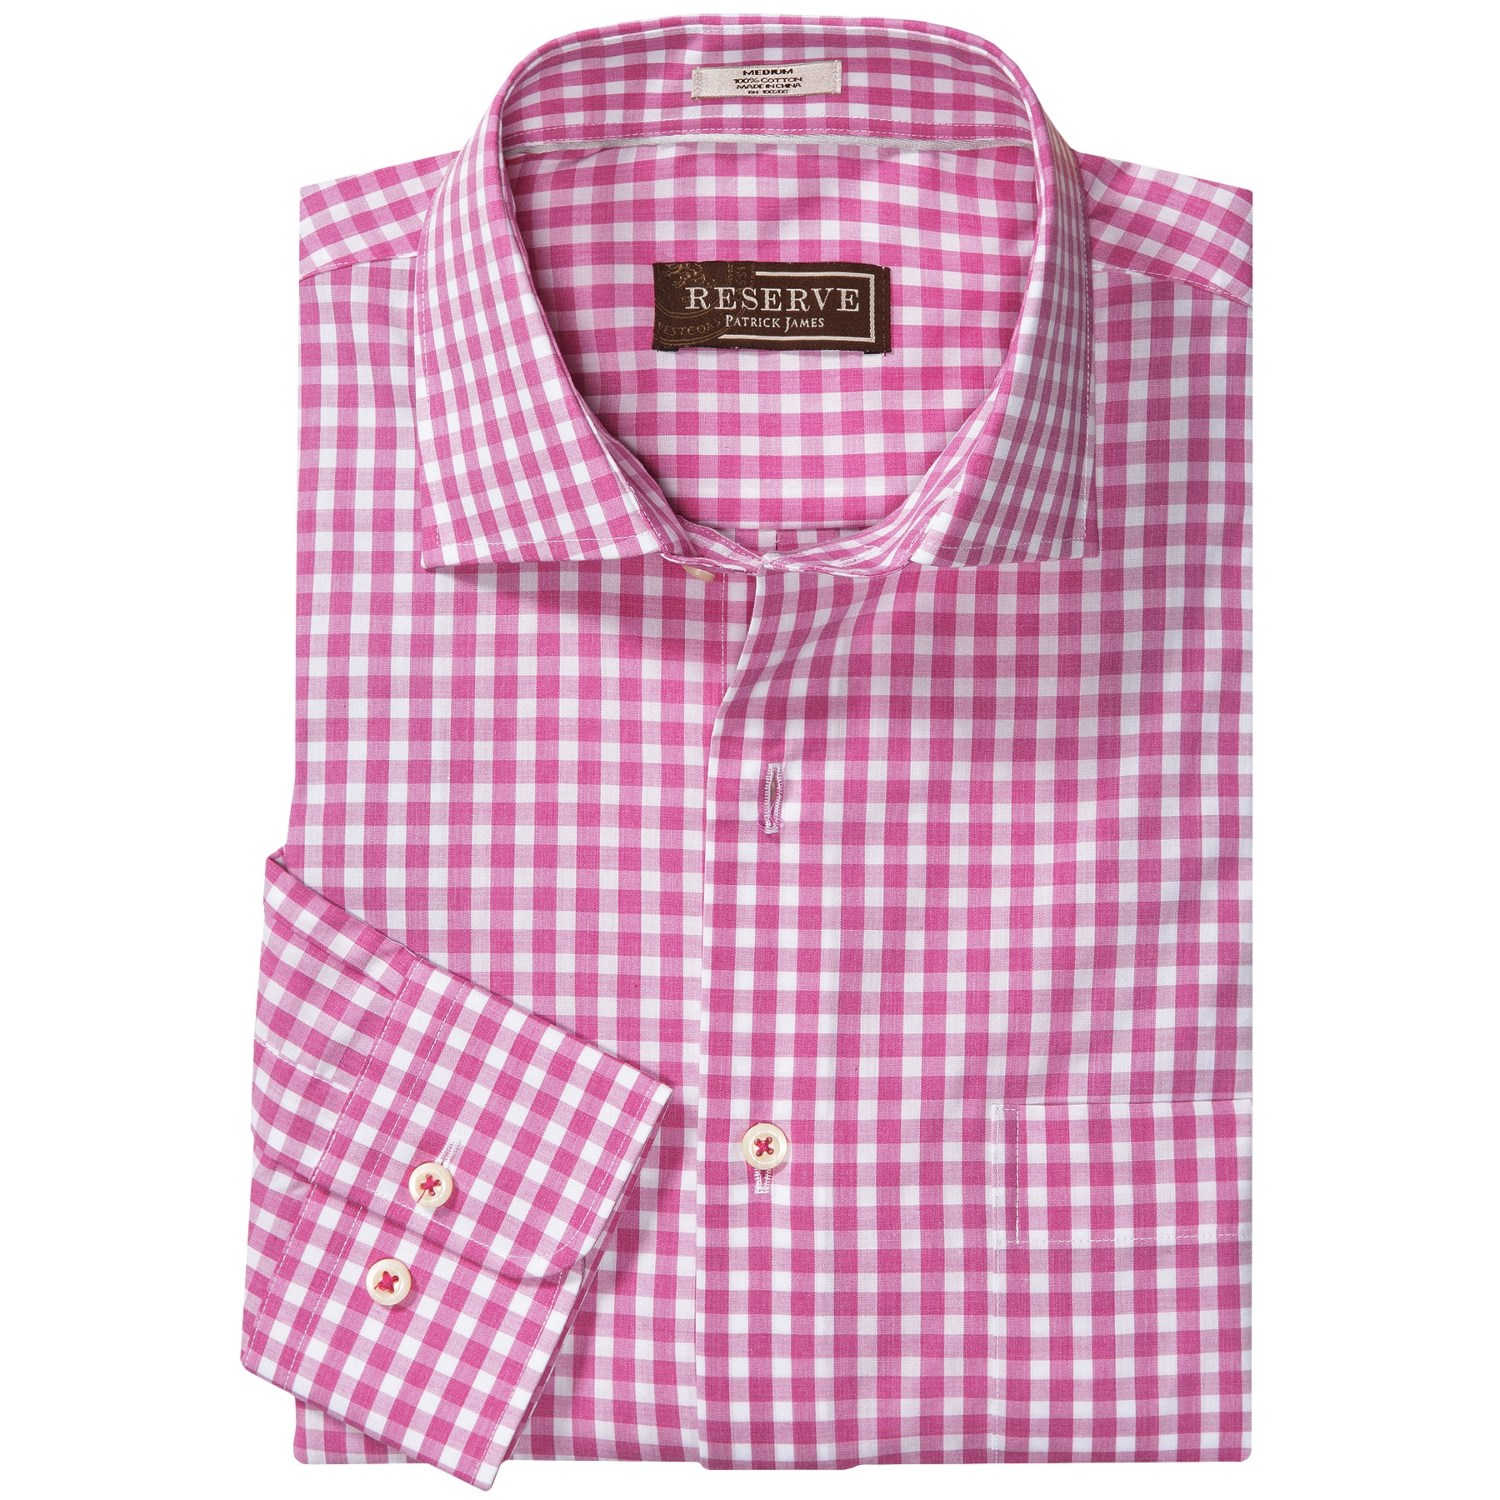 Patrick james reserve melange check shirt french front for French cut shirt sleeve